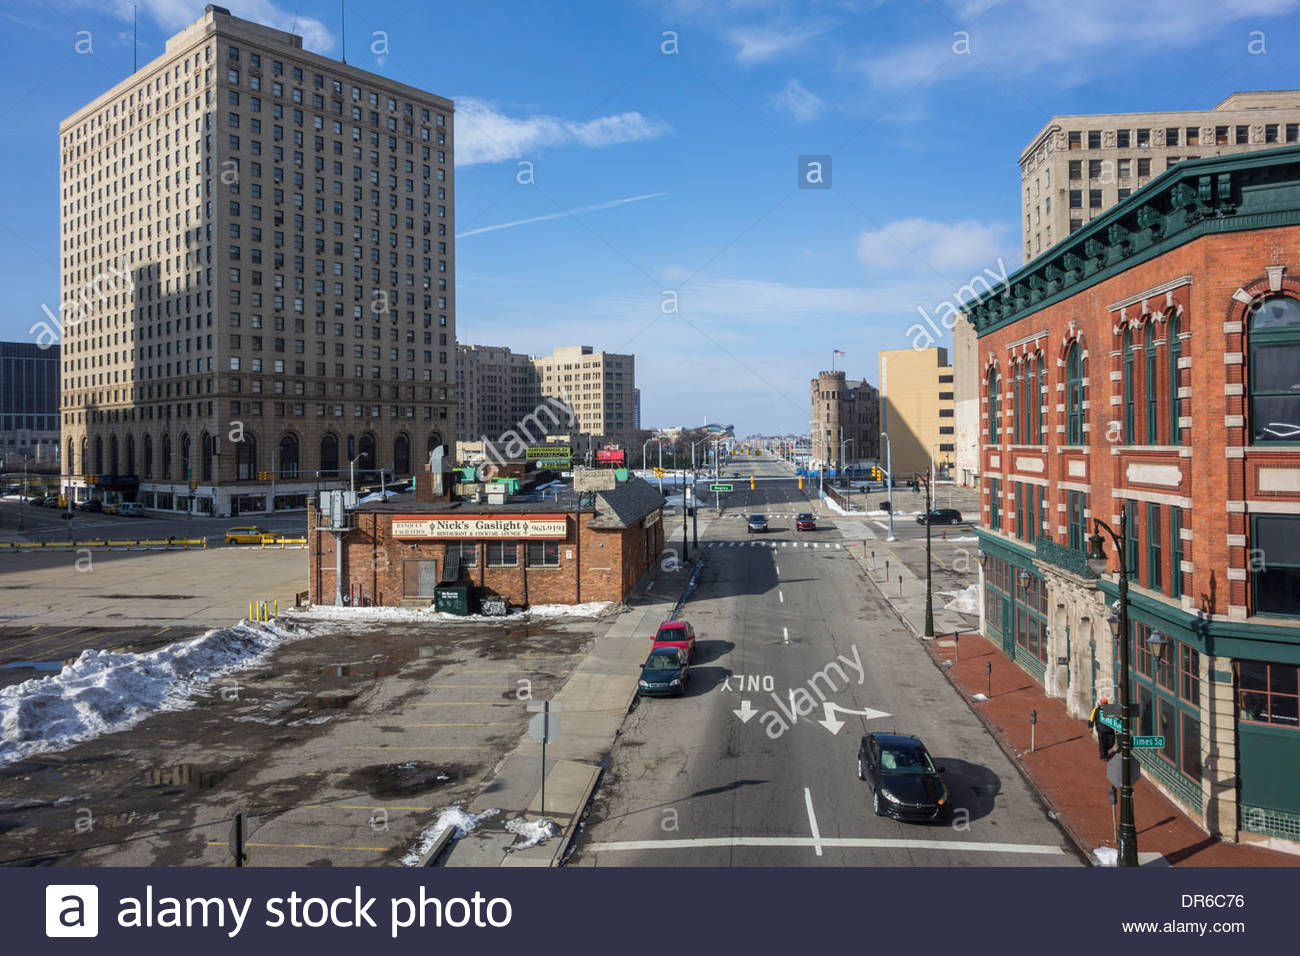 Nick's Gaslight Restaurant at W. Grand Boulevard in downtown Detroit, Michigan and Grand River Avenue - Stock Image